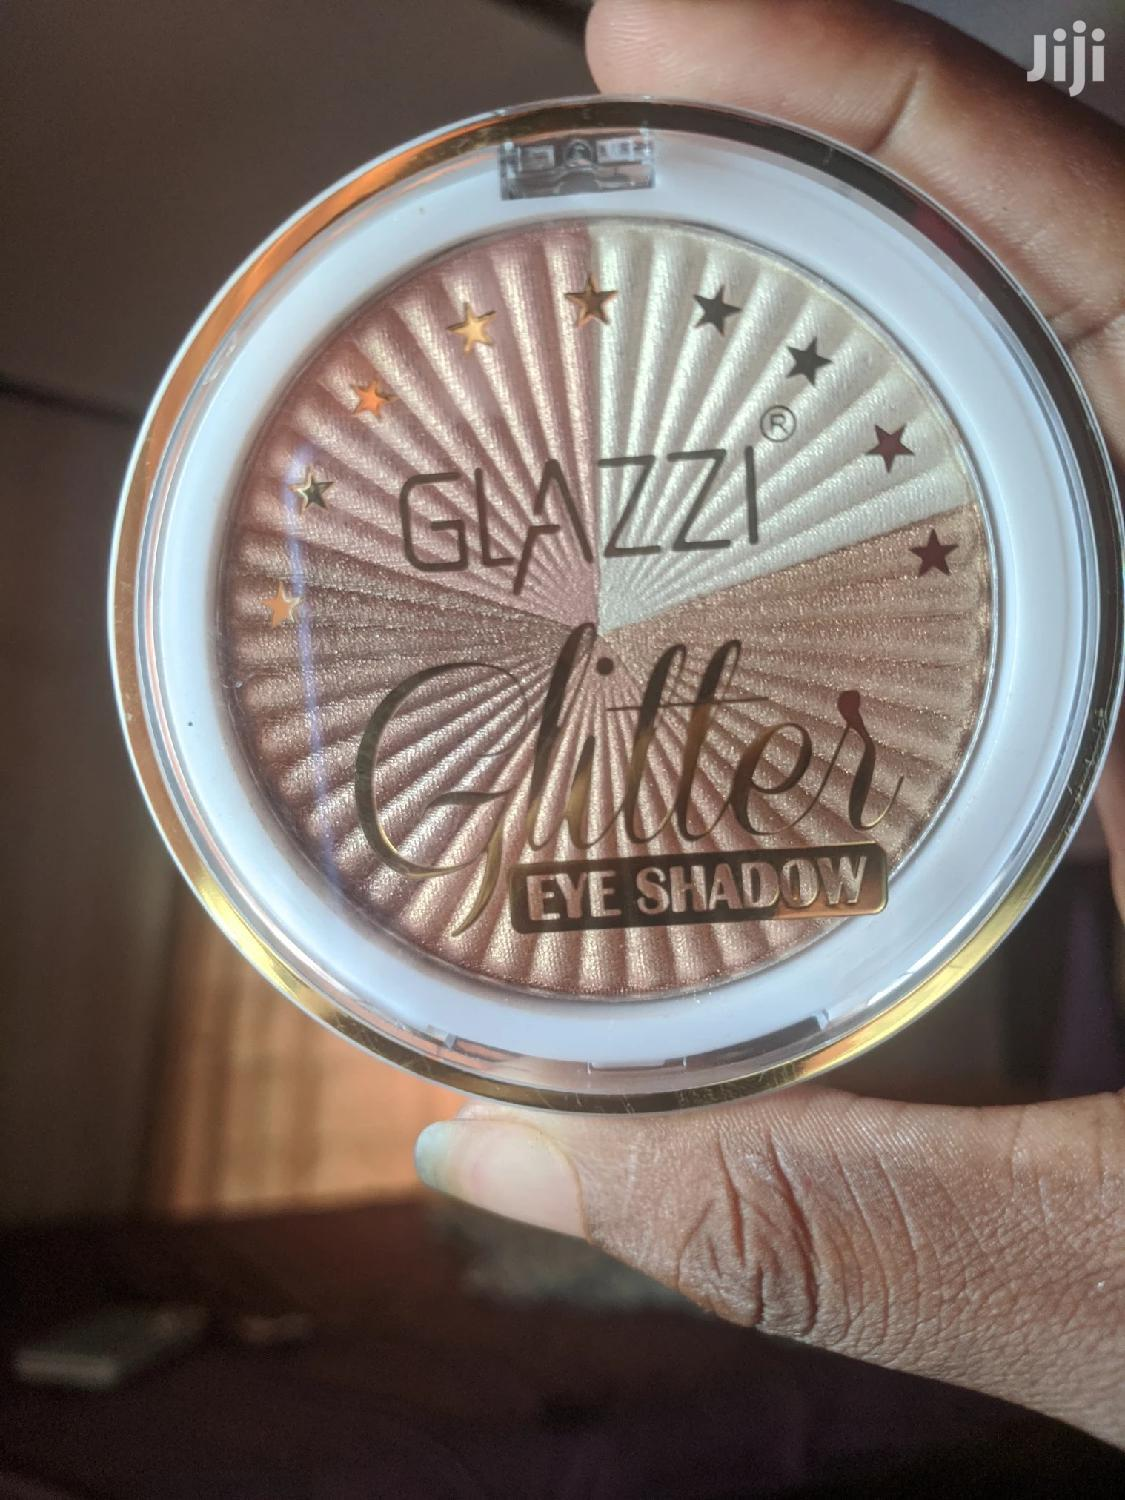 5shades Makeup Highlighter   Health & Beauty Services for sale in Odorkor, Greater Accra, Ghana